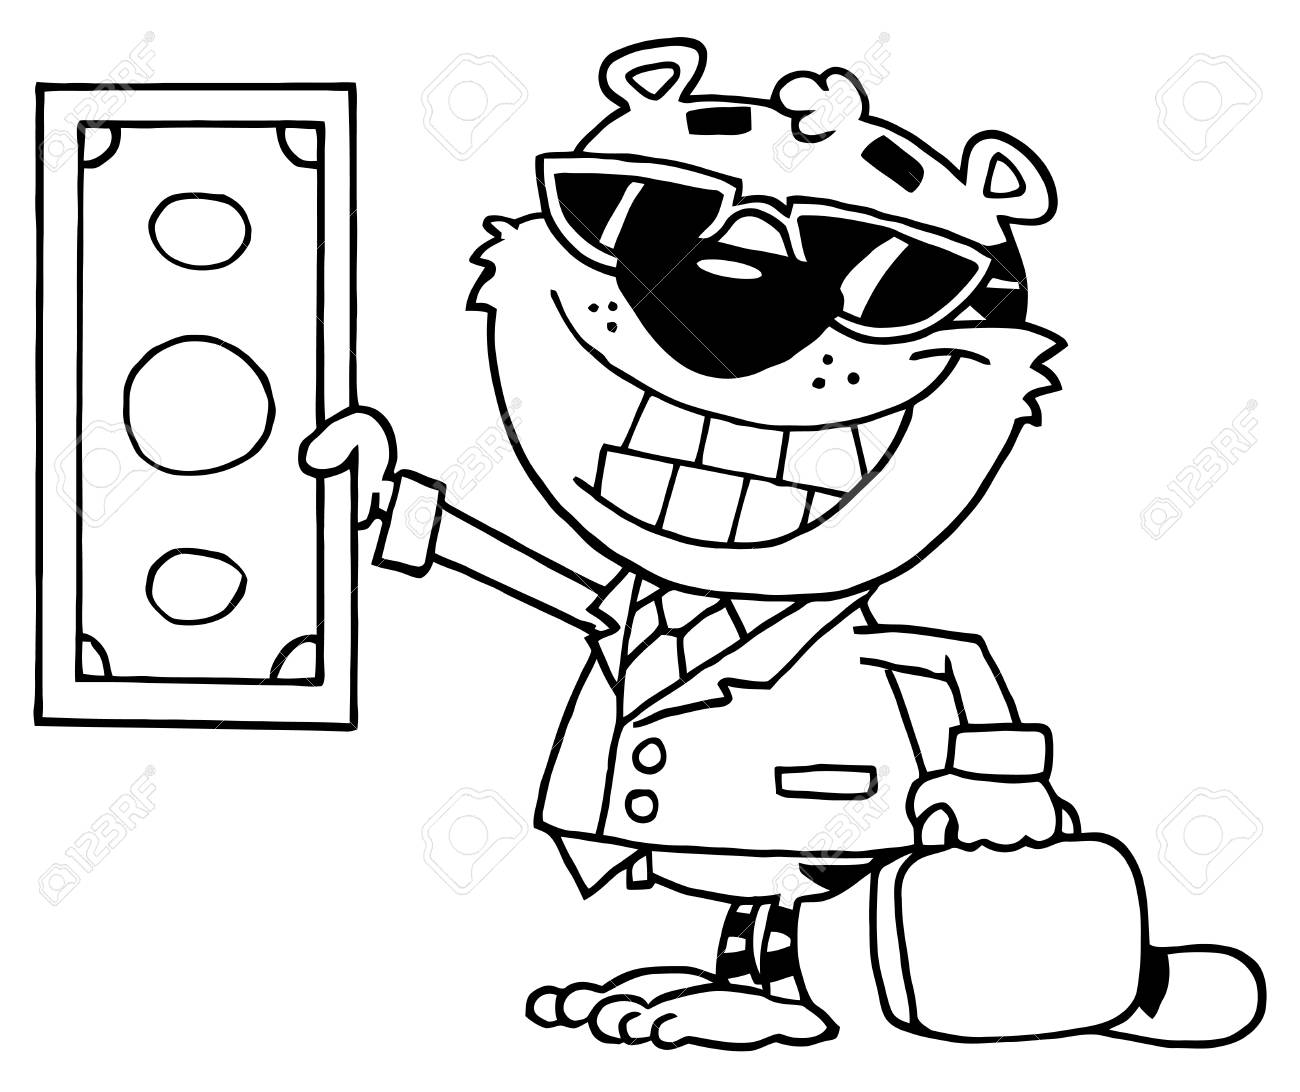 Outlined Wealthy Tiger Holding Cash Stock Vector - 16578303